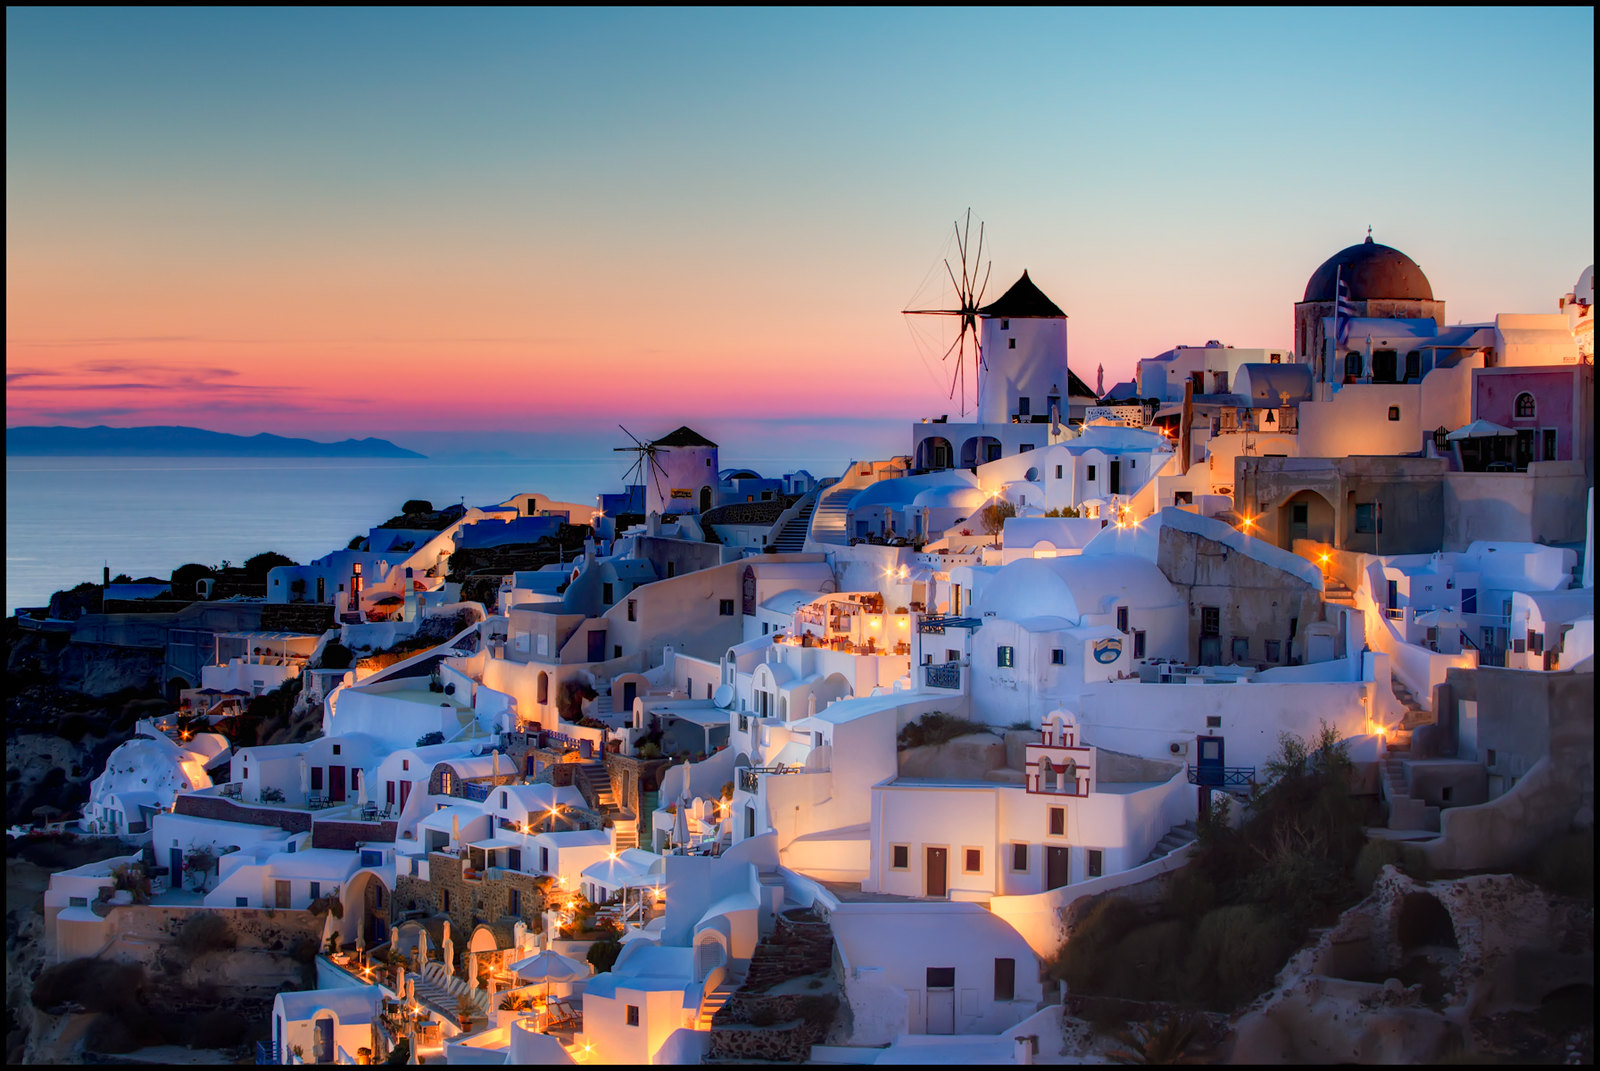 Santorini - Top Celebrity Vacation Hot Spots